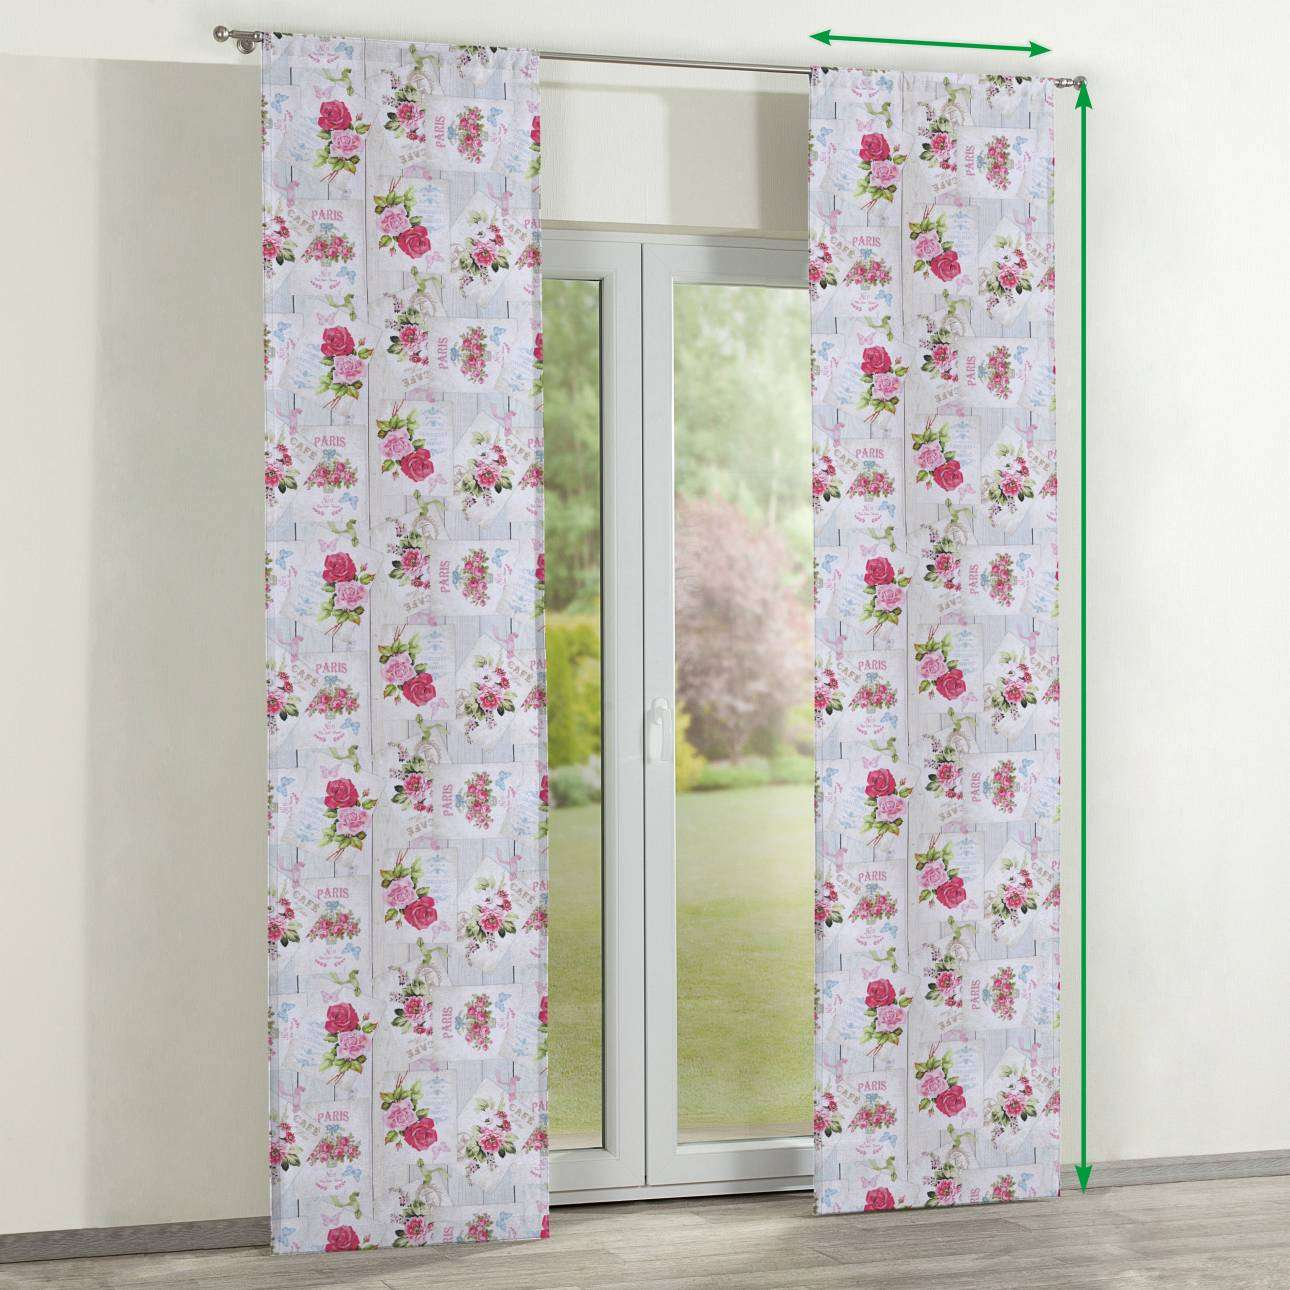 Slot panel curtains – Set of 2 in collection Ashley, fabric: 140-19